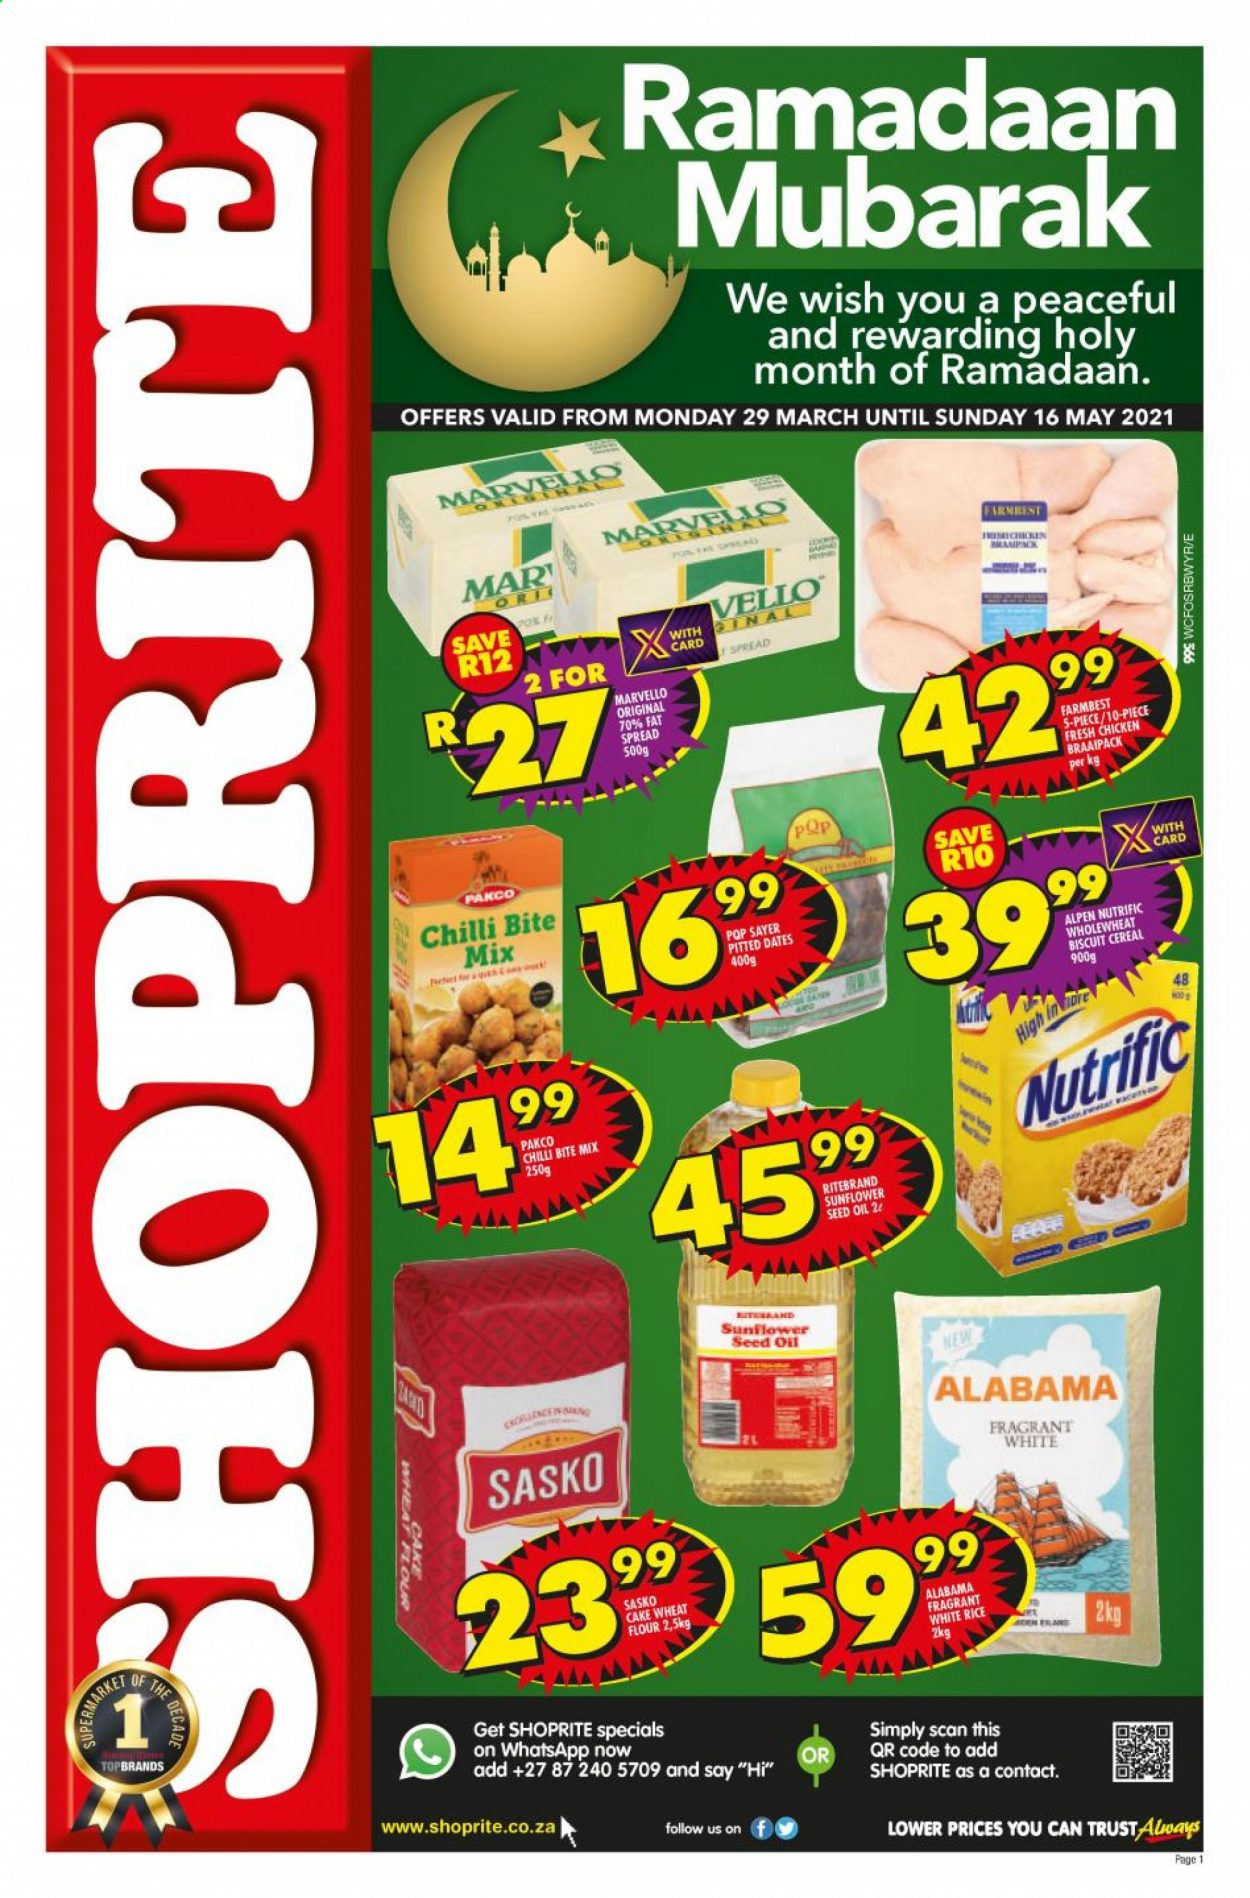 Shoprite catalogue  - 03.29.2021 - 05.16.2021 - Sales products - cake, fat spread, biscuit, flour, wheat flour, cake flour, cereals, rice, white rice, sunflower oil, oil, fard dates, chicken, Trust. Page 1.